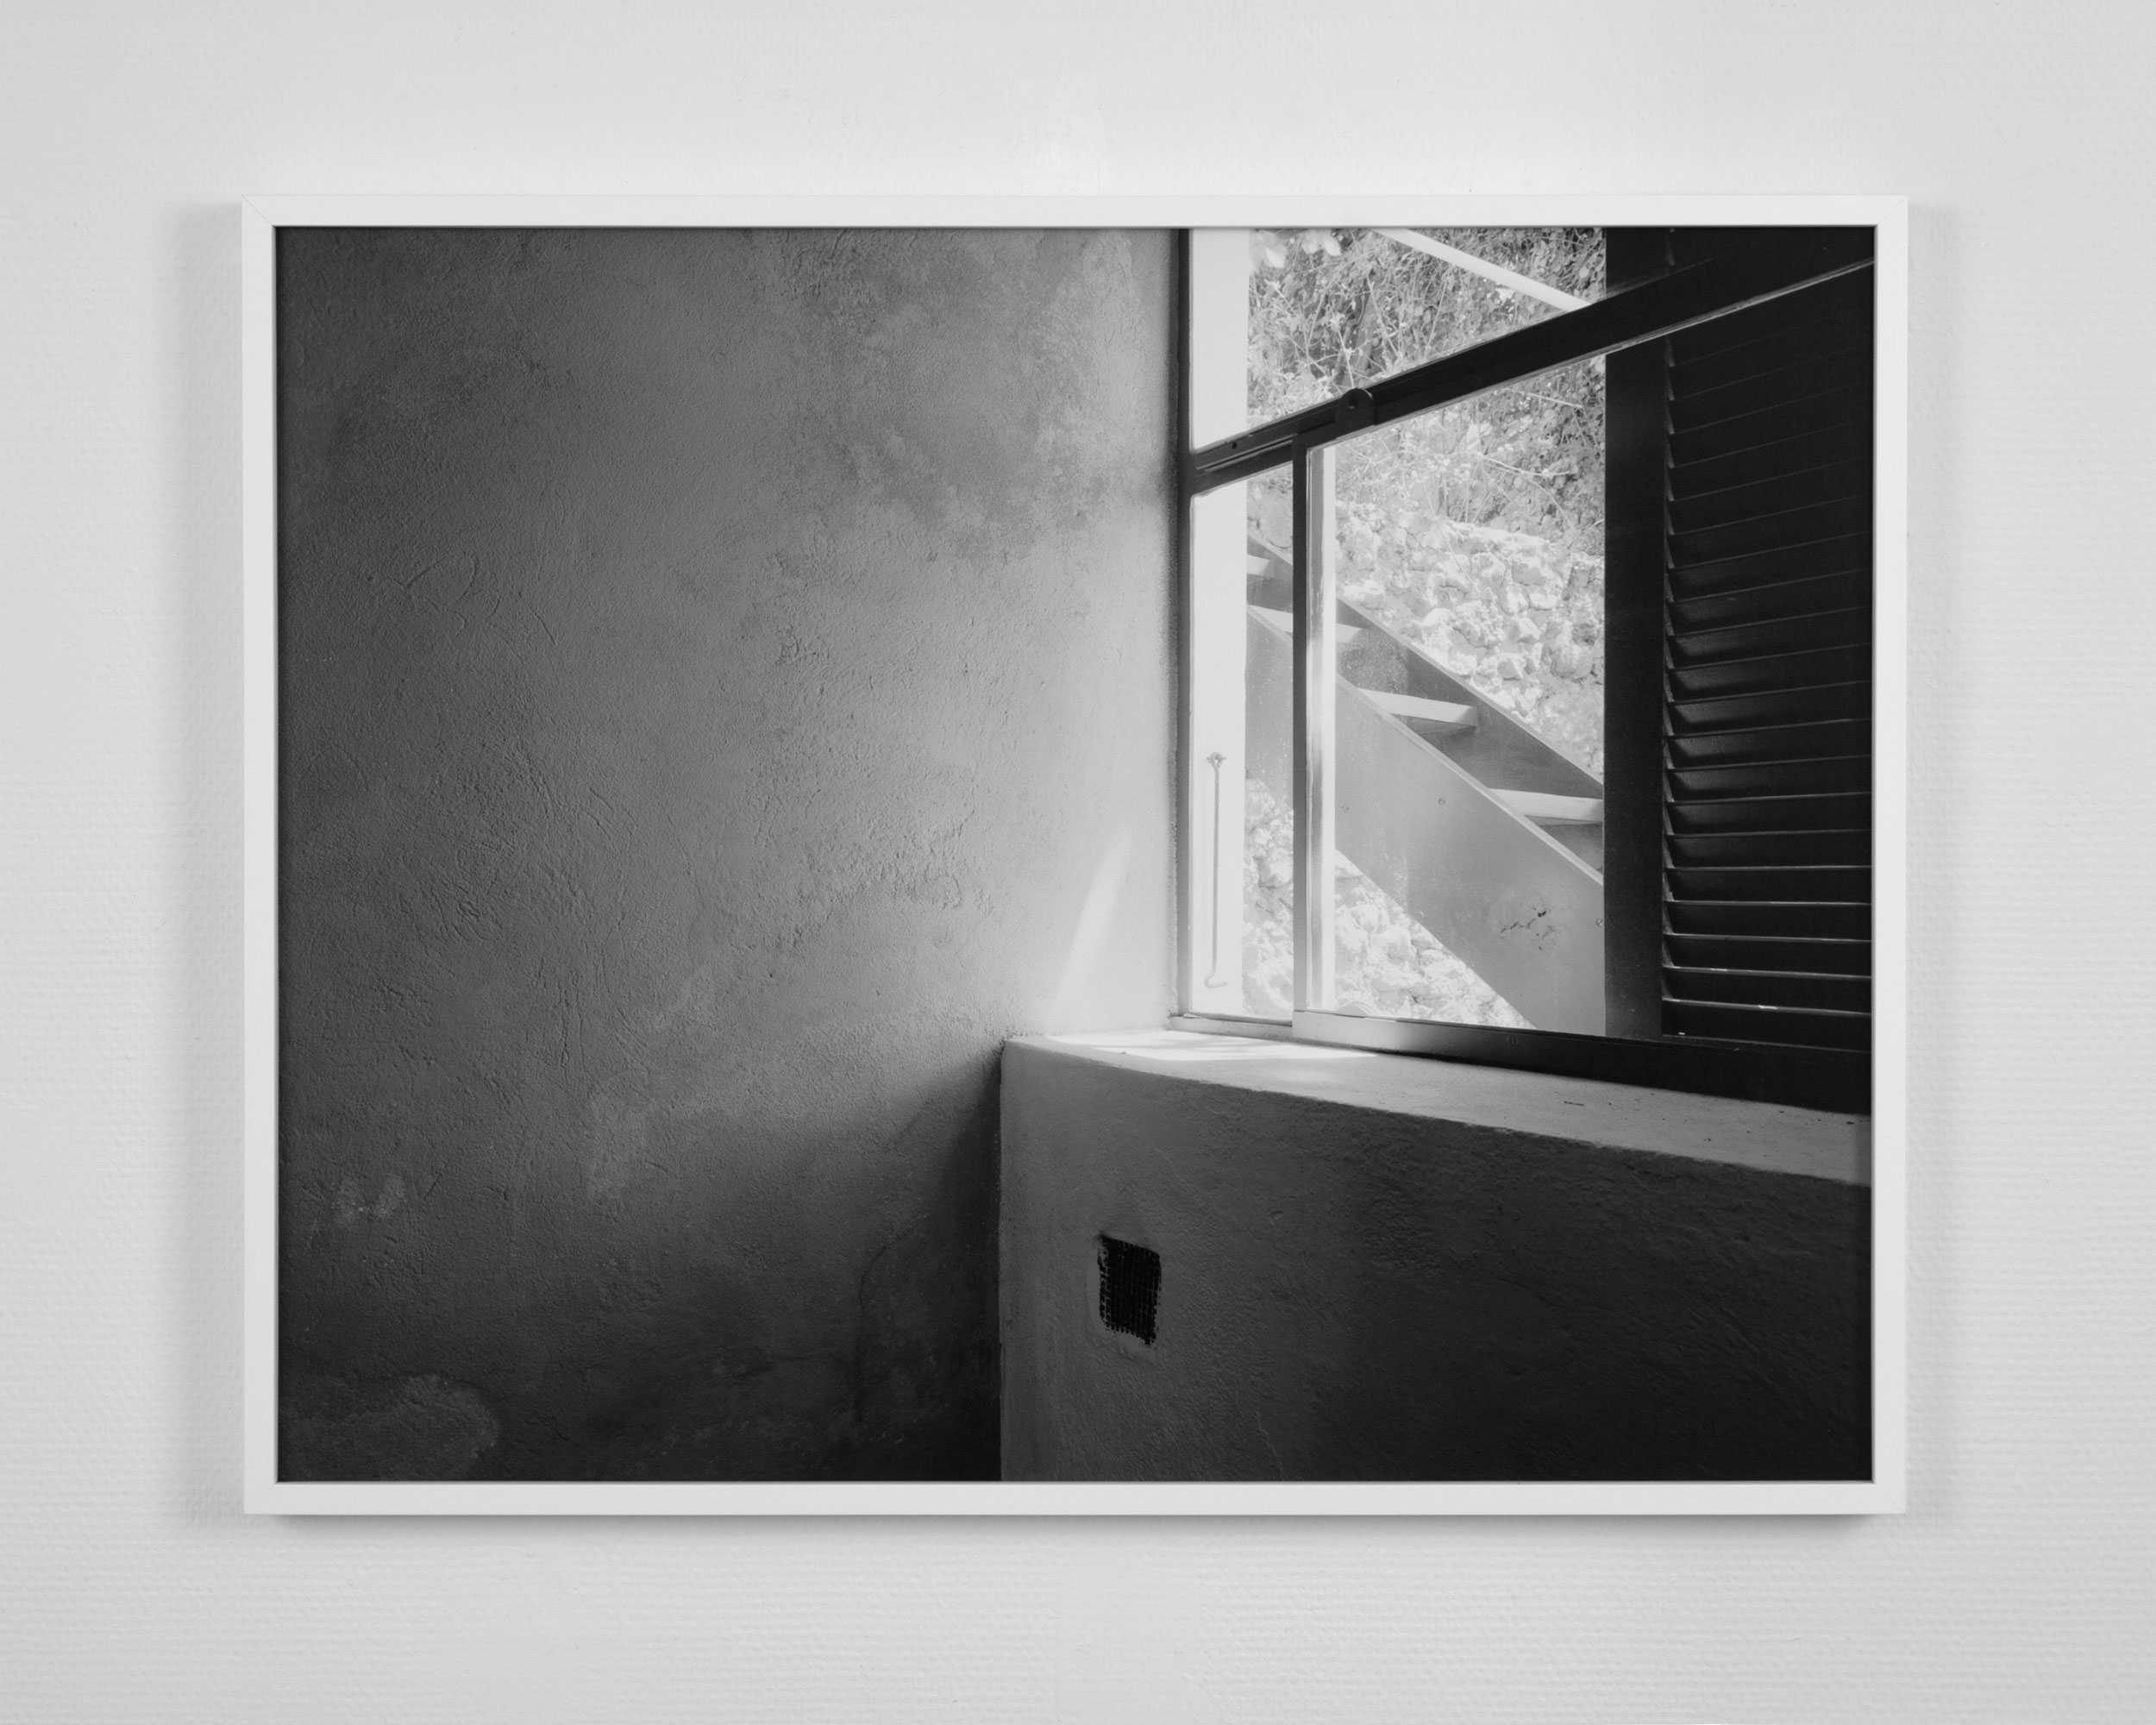 A place by the sea #4 (Interior corner), 2016